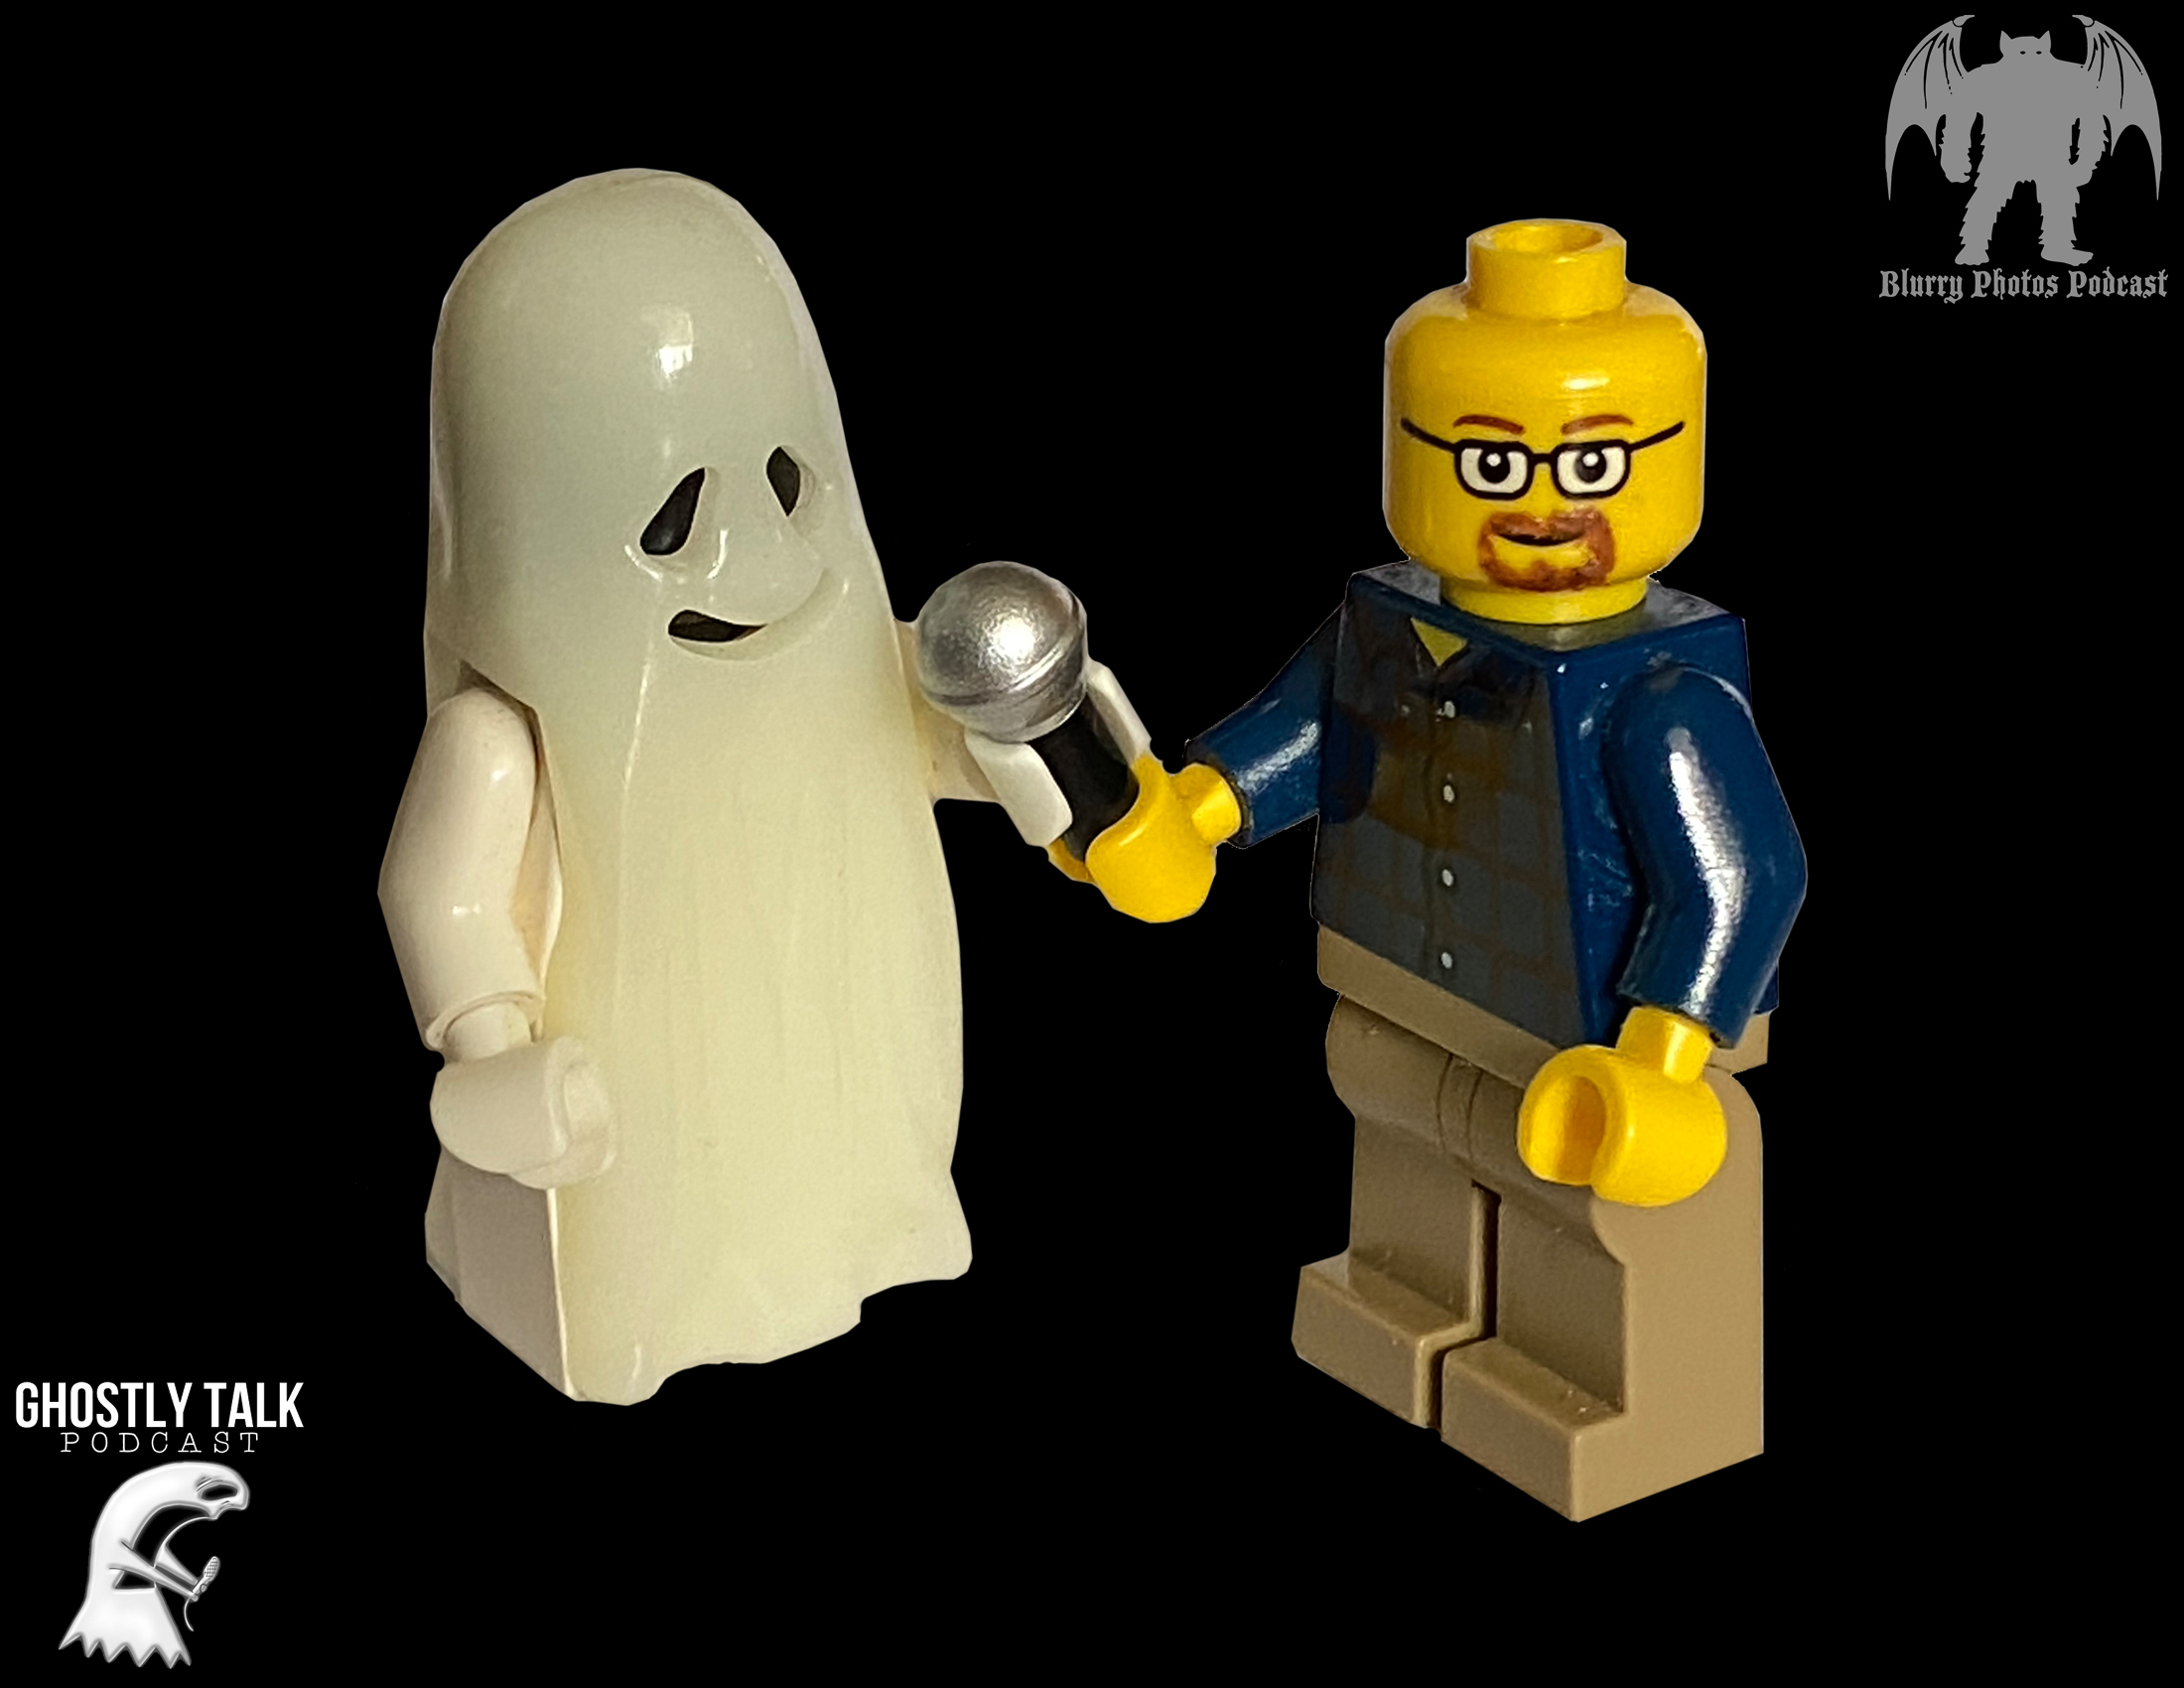 EVPs with Ghostly Talk Podcast